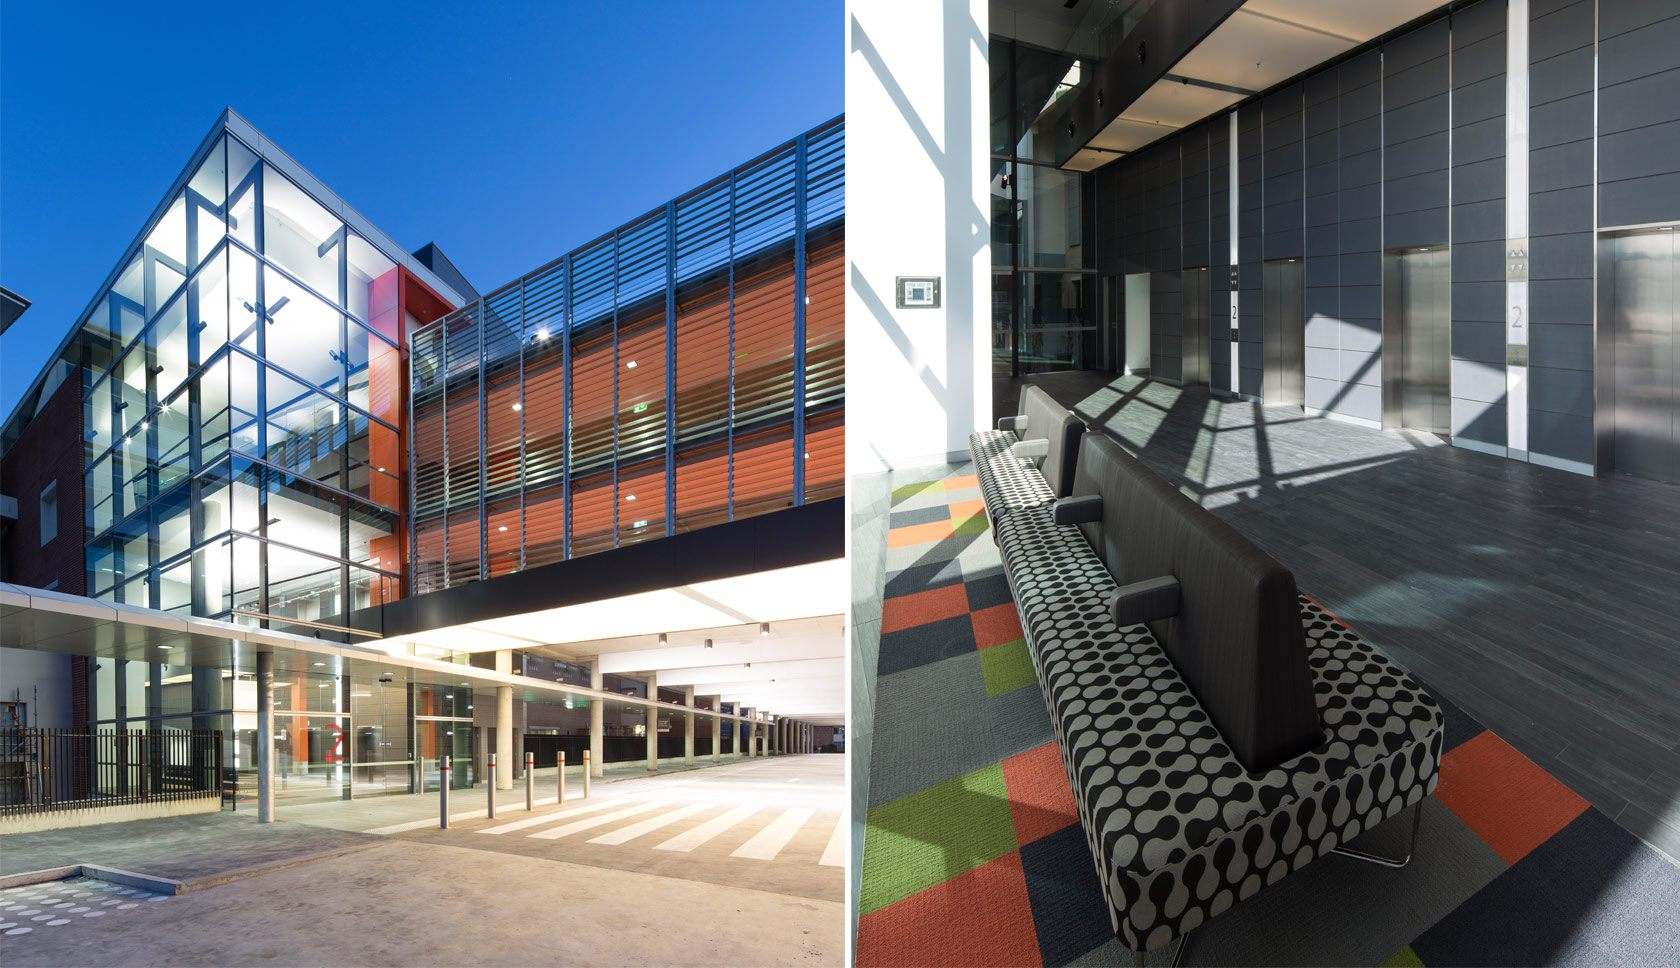 Sydney Adventist hospital front entrance internal and external view